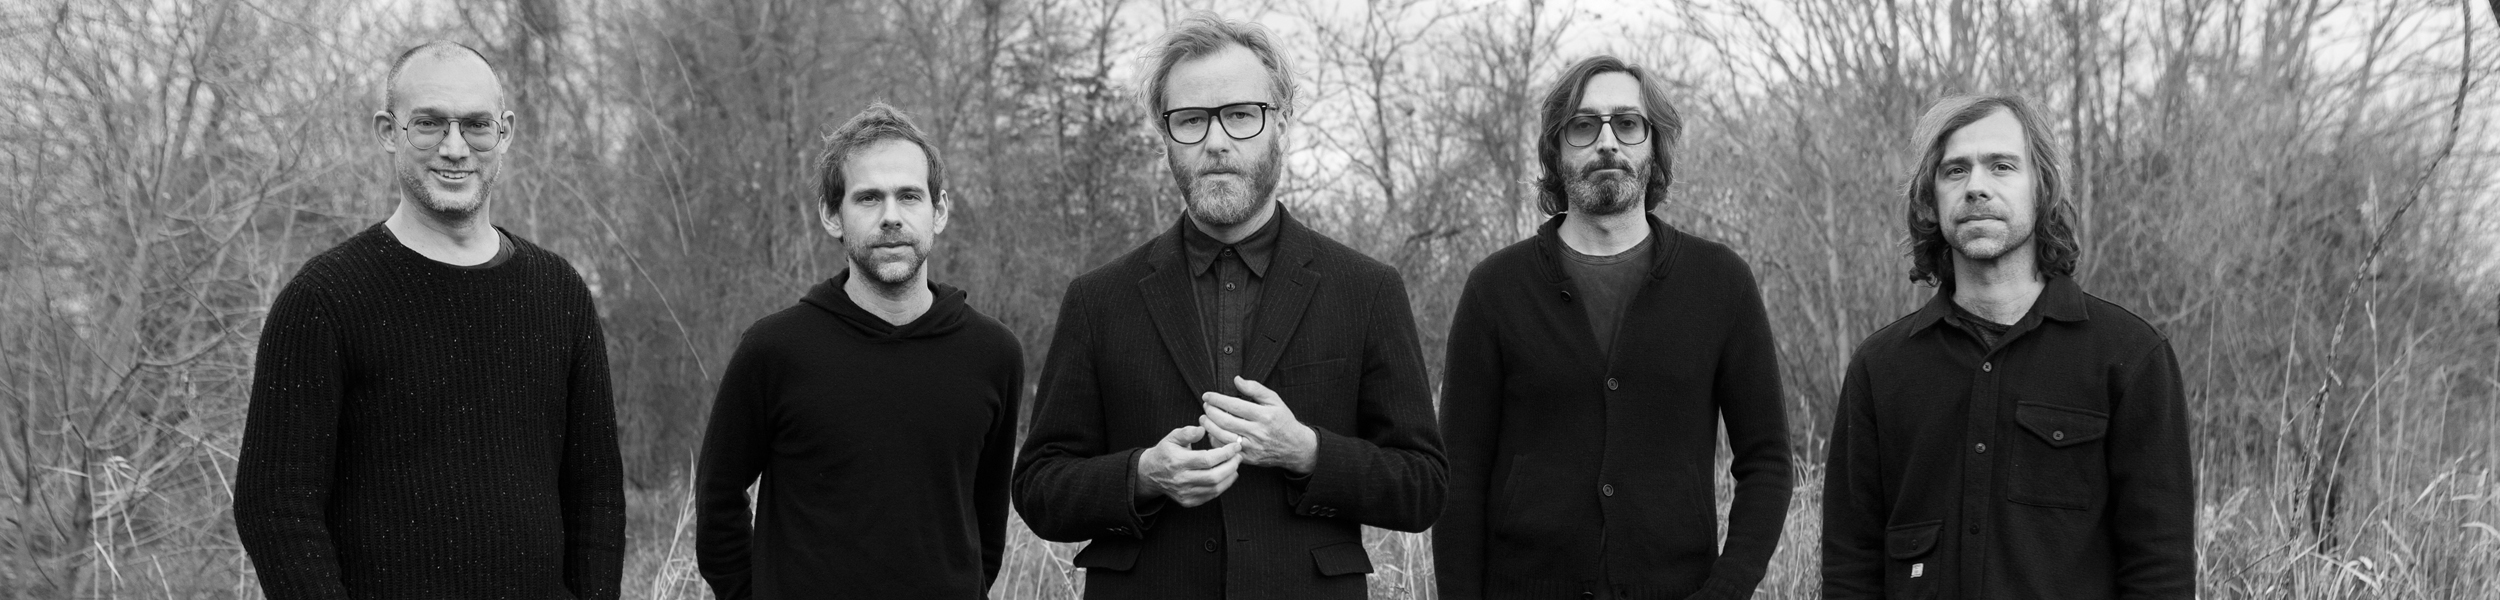 The National - New Album 'Sleep Well Beast', Plus New Single Out Now